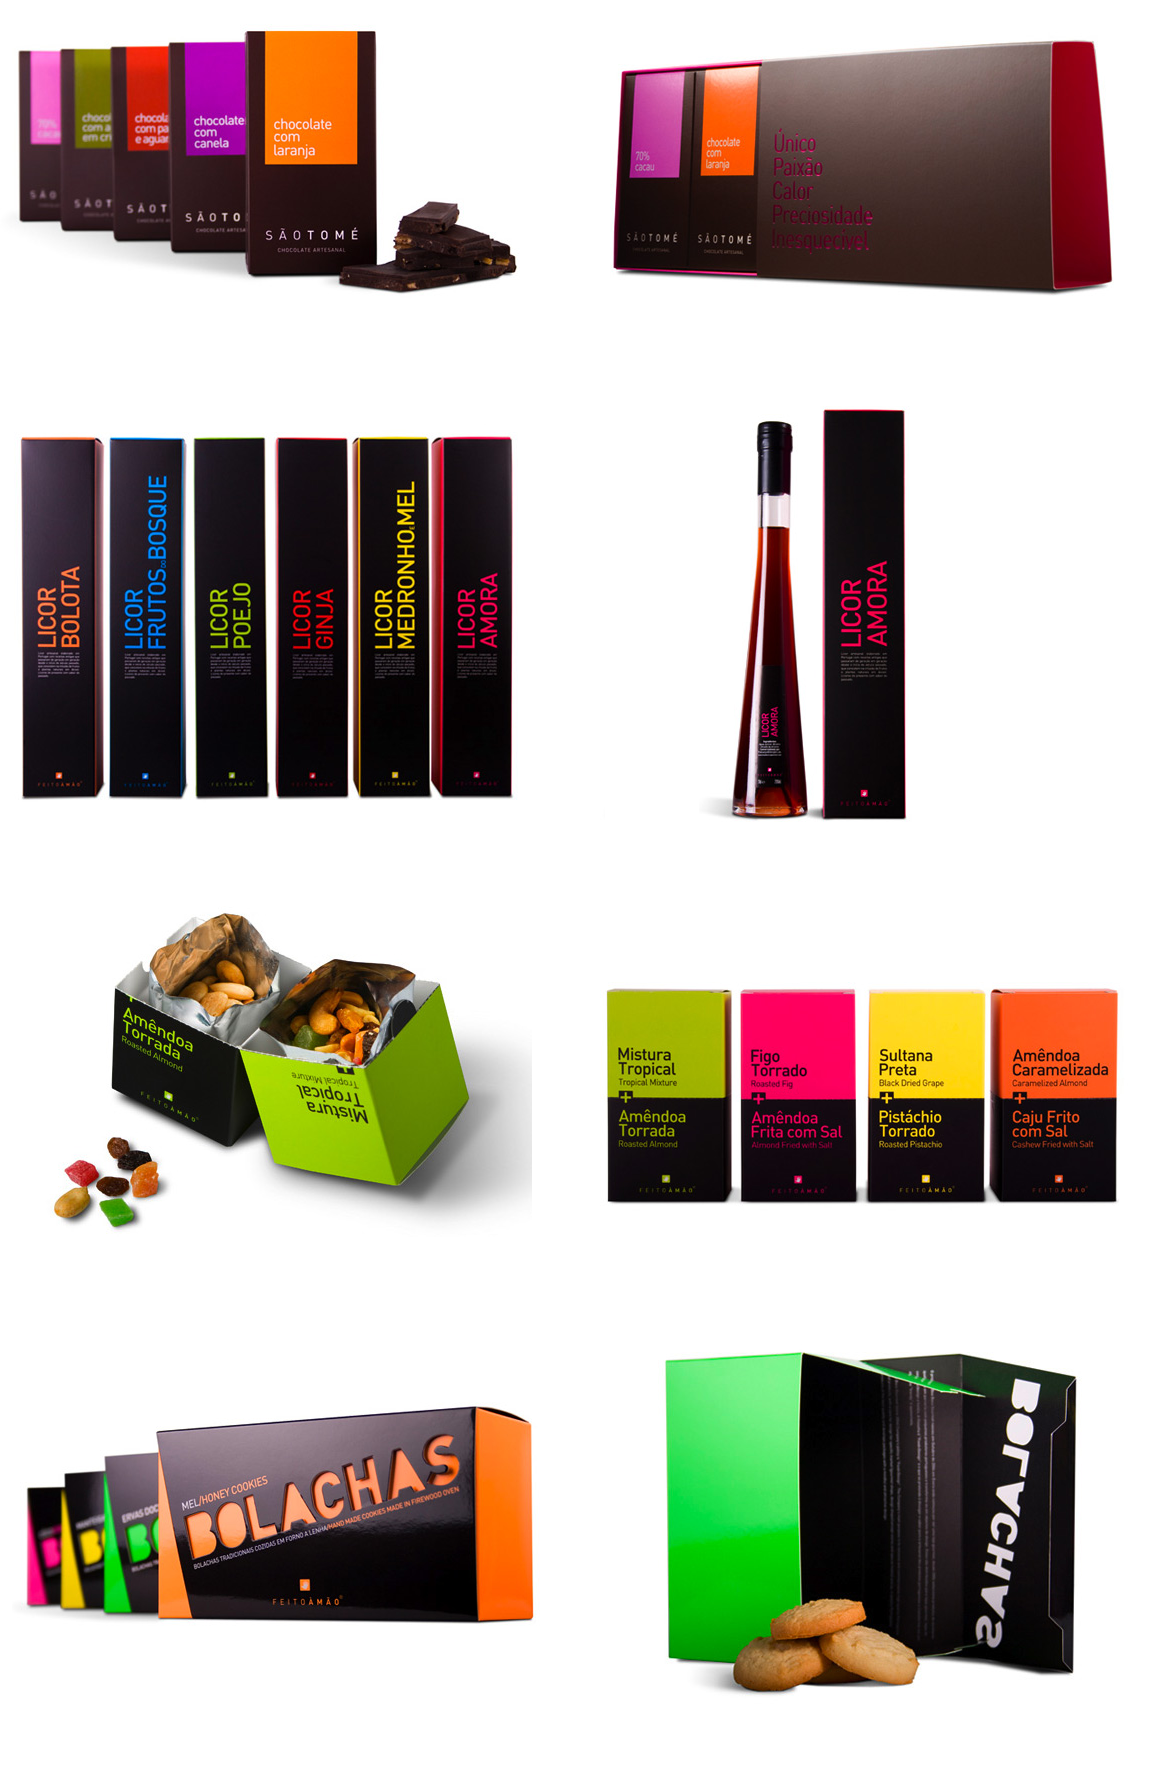 """""""Boa Boca"""" Portuguese brand with gourmet goods A smart and colorful packaging."""